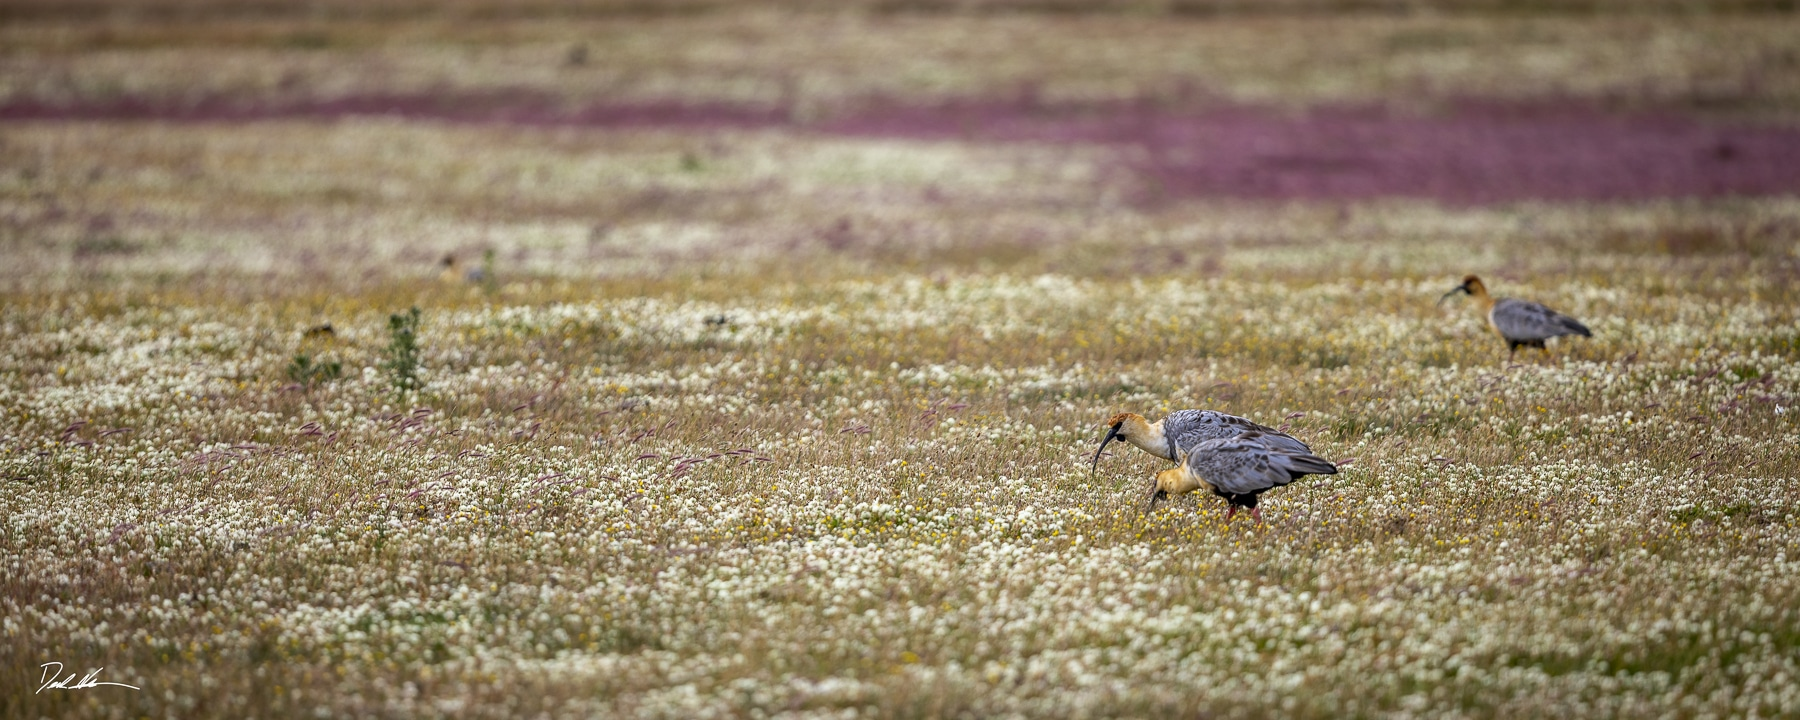 birds feeding in Patagonia field